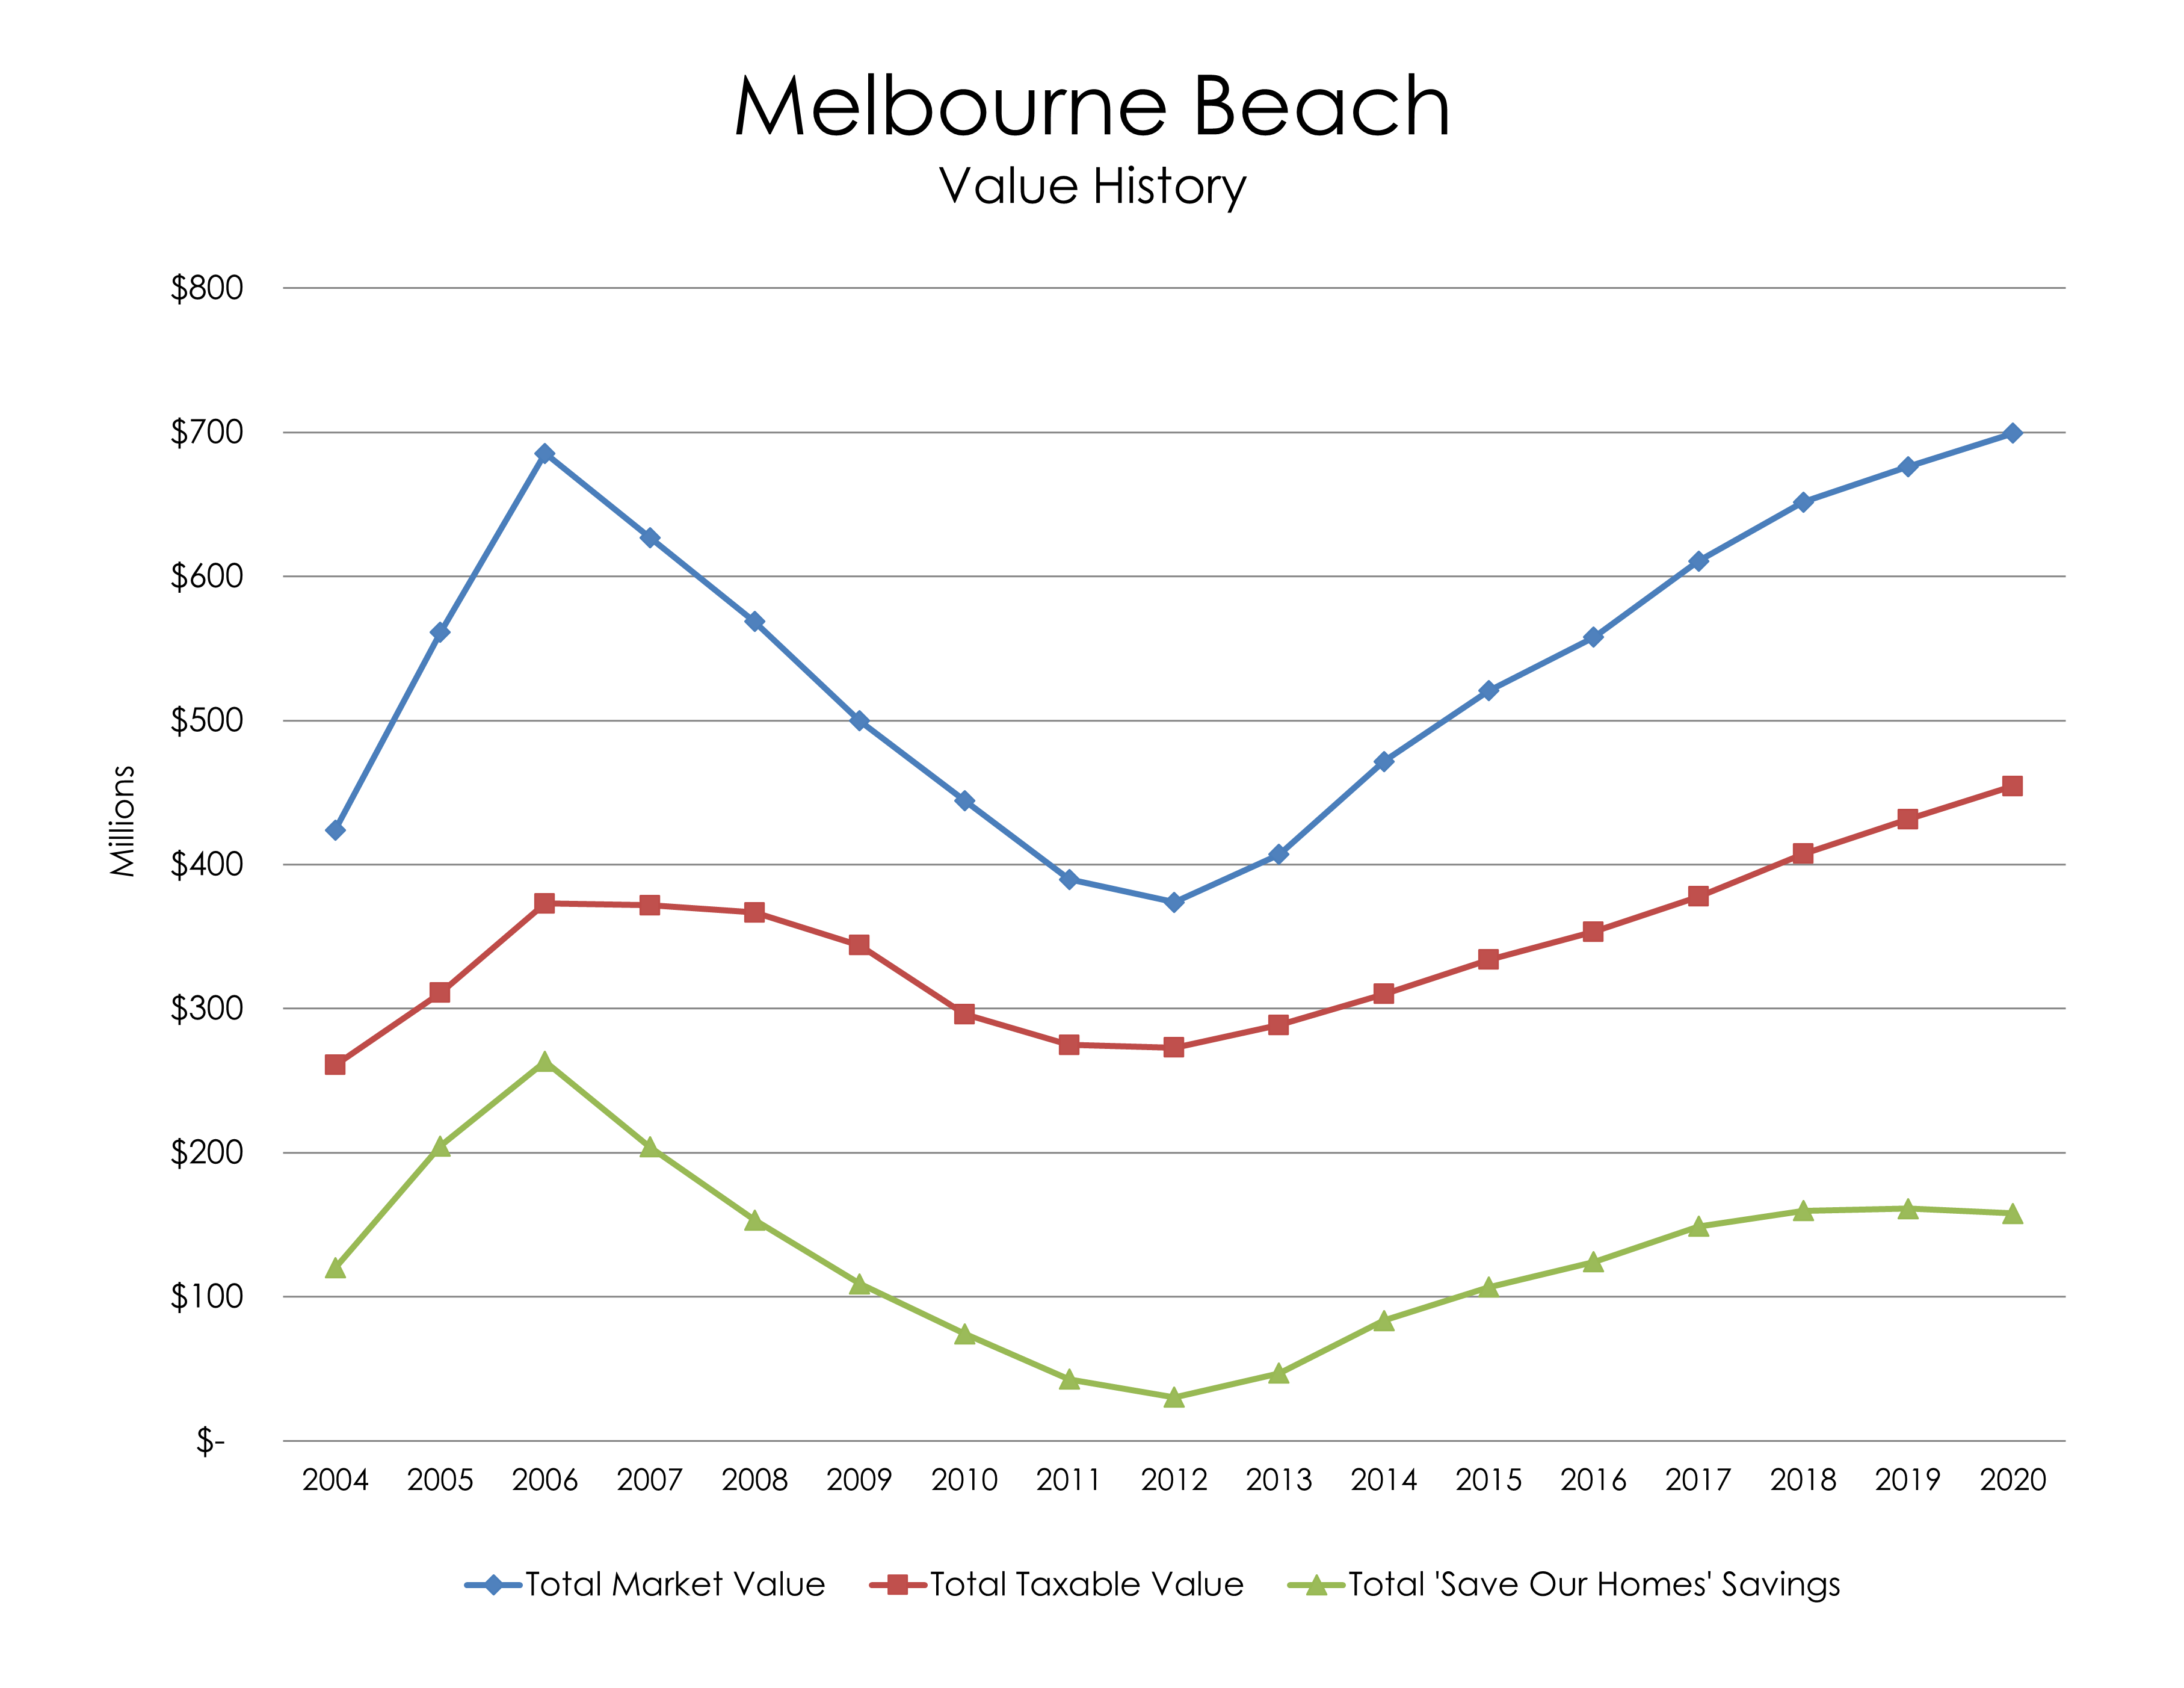 Chart: Melbourne Beach Value History